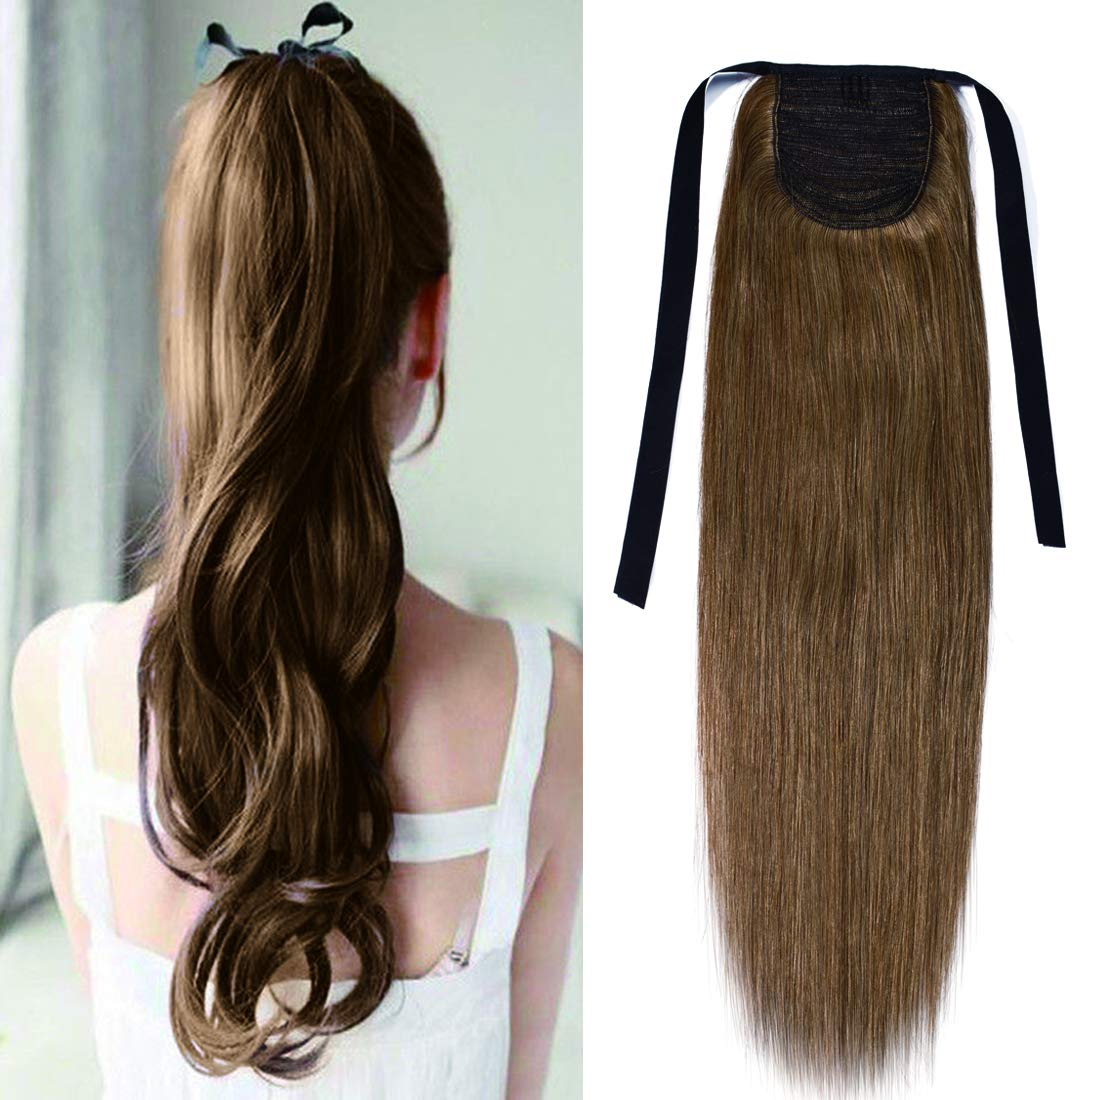 Tie Up Ponytail Extension Human Hair Pony Tails Hair Extensions Binding Ponytail Hair Extensions with Combs 100% Real Remy Hair Long Straight with Ribbon For Women #06 Light Brown 20 Inch 95g